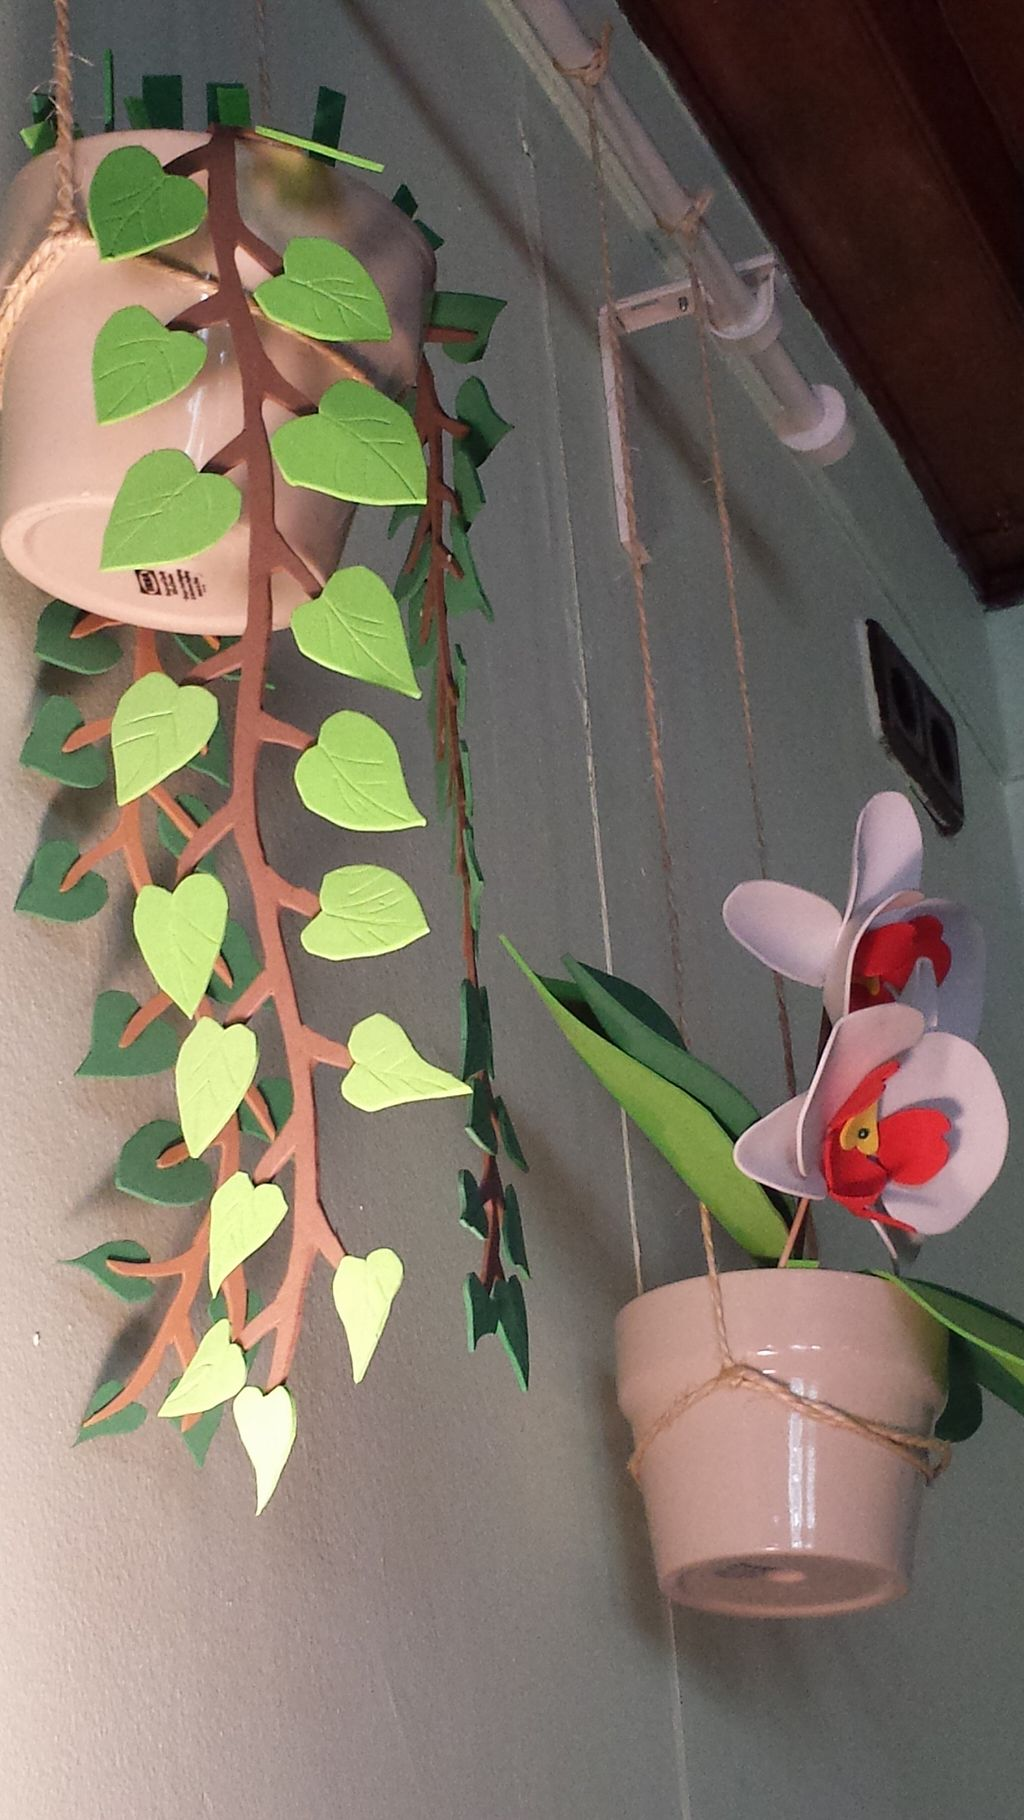 """Photo of Brotes Verdes  by <a href=""""/members/profile/NievesR"""">NievesR</a> <br/>Nice fake plants on the walls <br/> May 17, 2016  - <a href='/contact/abuse/image/52695/149486'>Report</a>"""